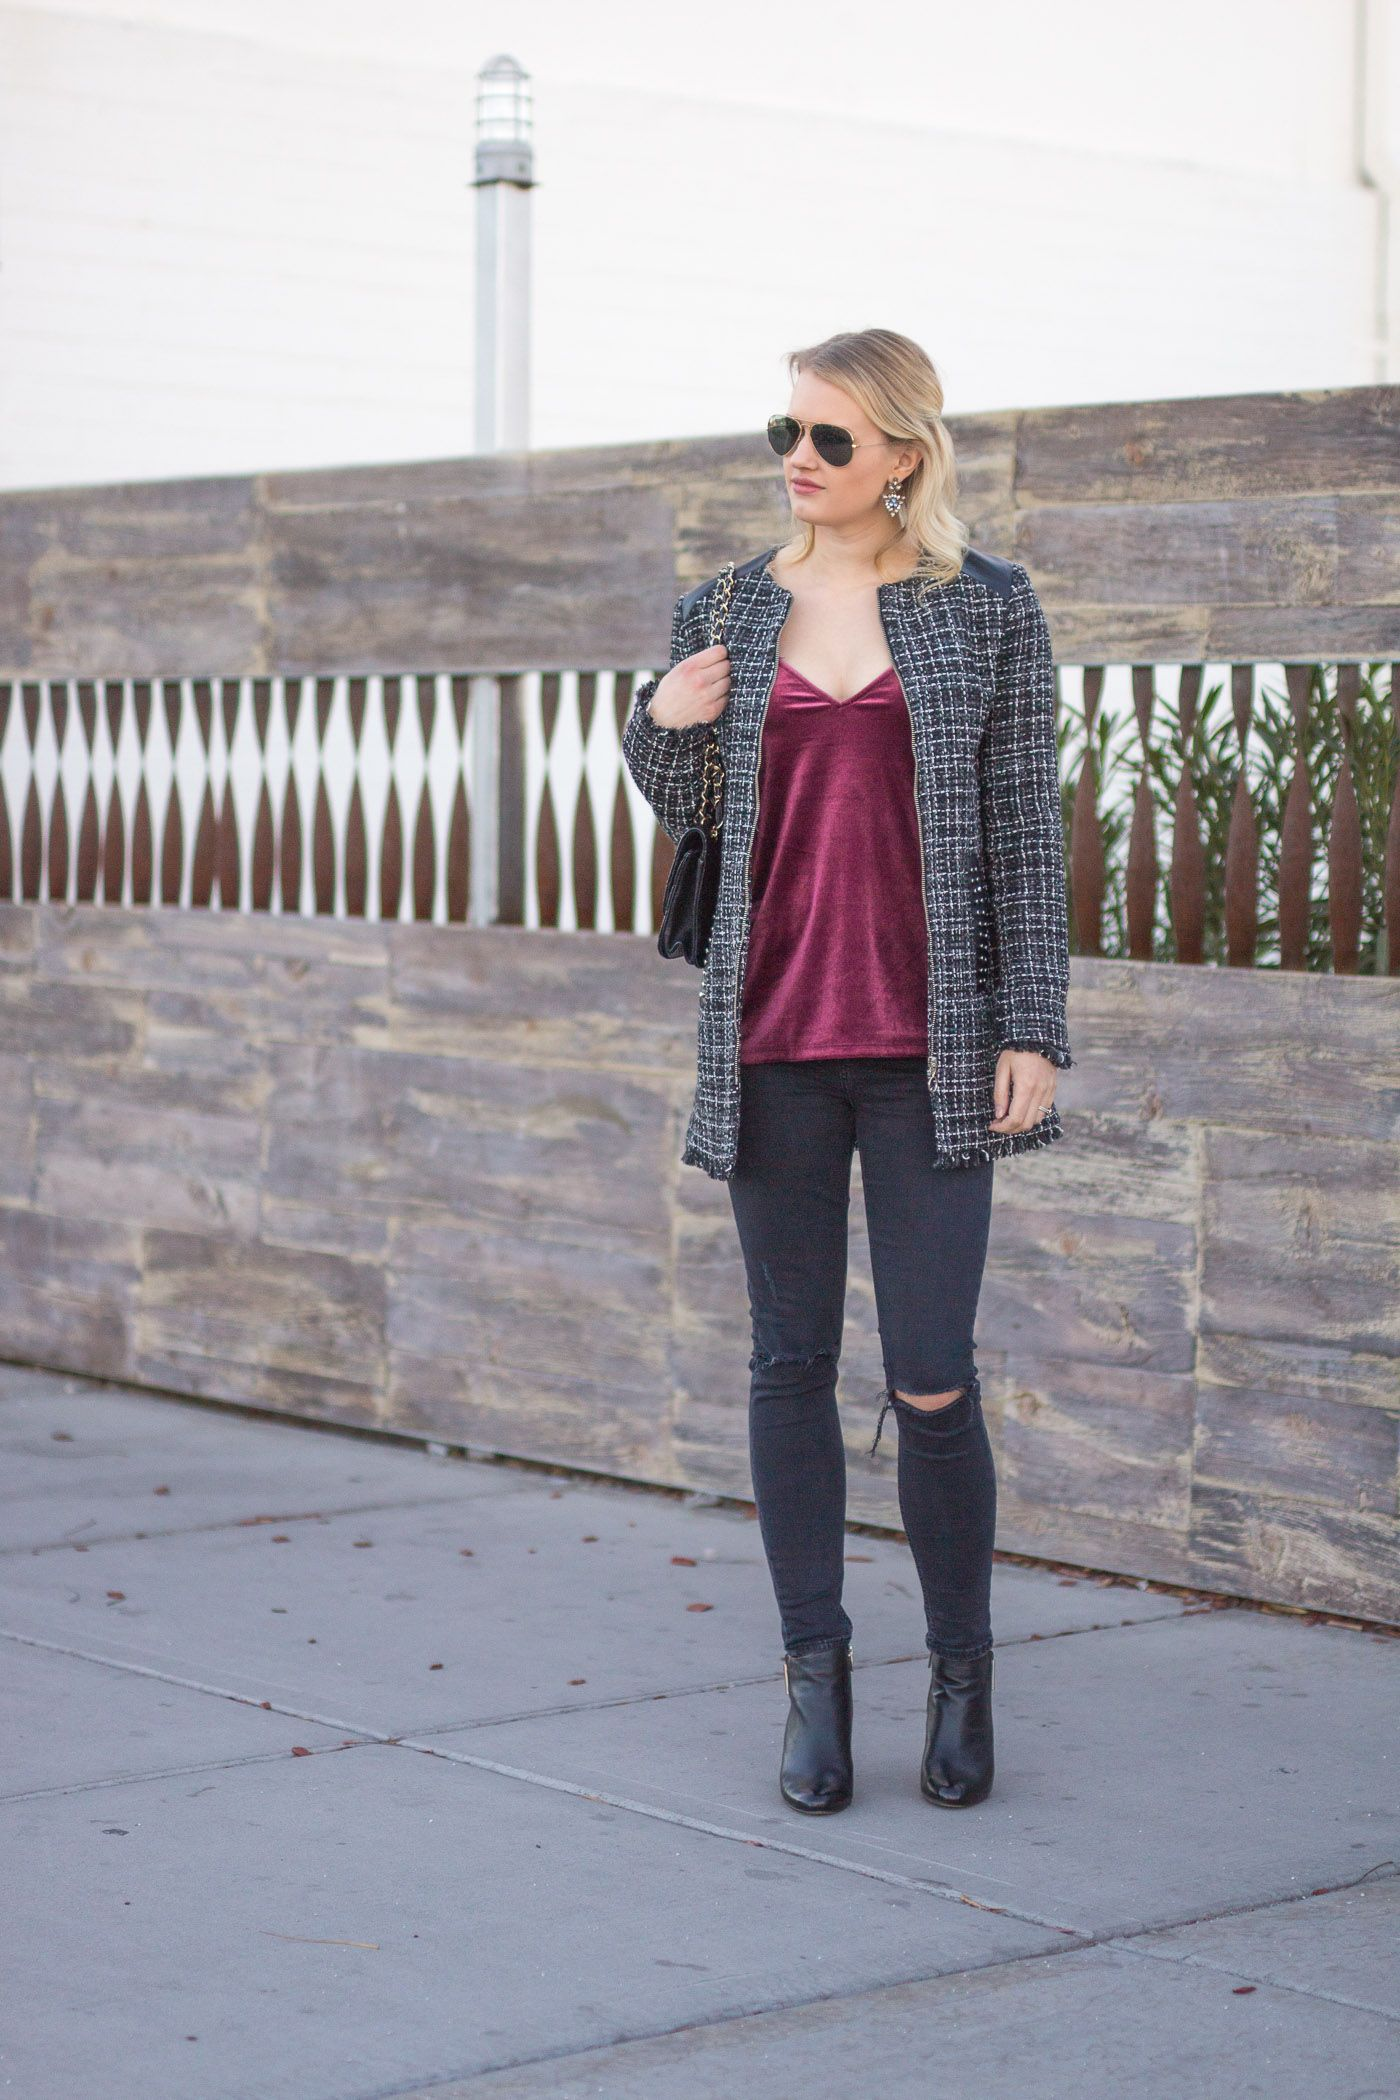 Fashionable Outfit Idea with Tweed Coats photo